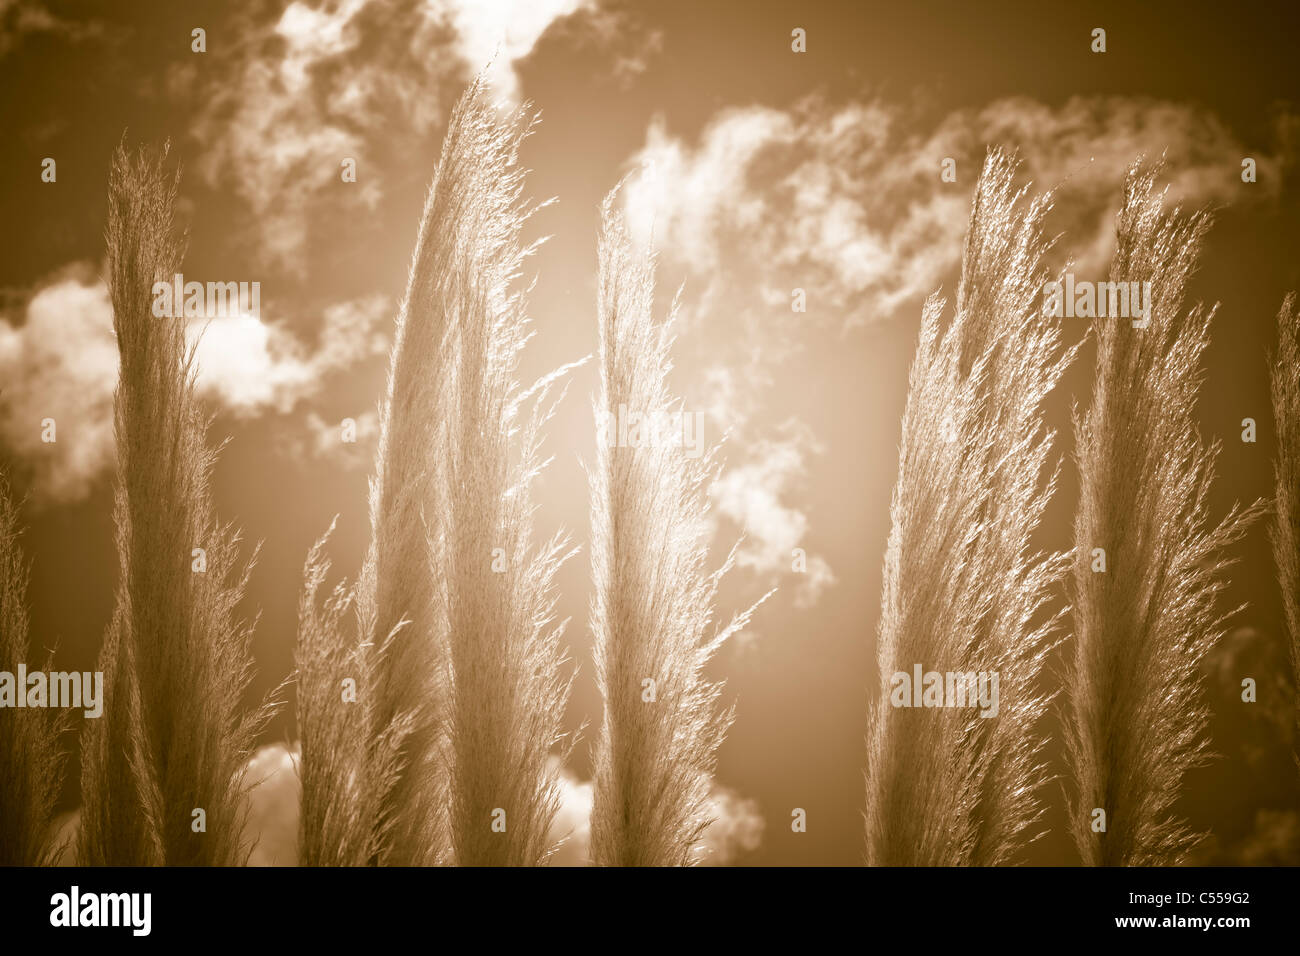 Detail of reed and sunset. Natural abstract background. - Stock Image